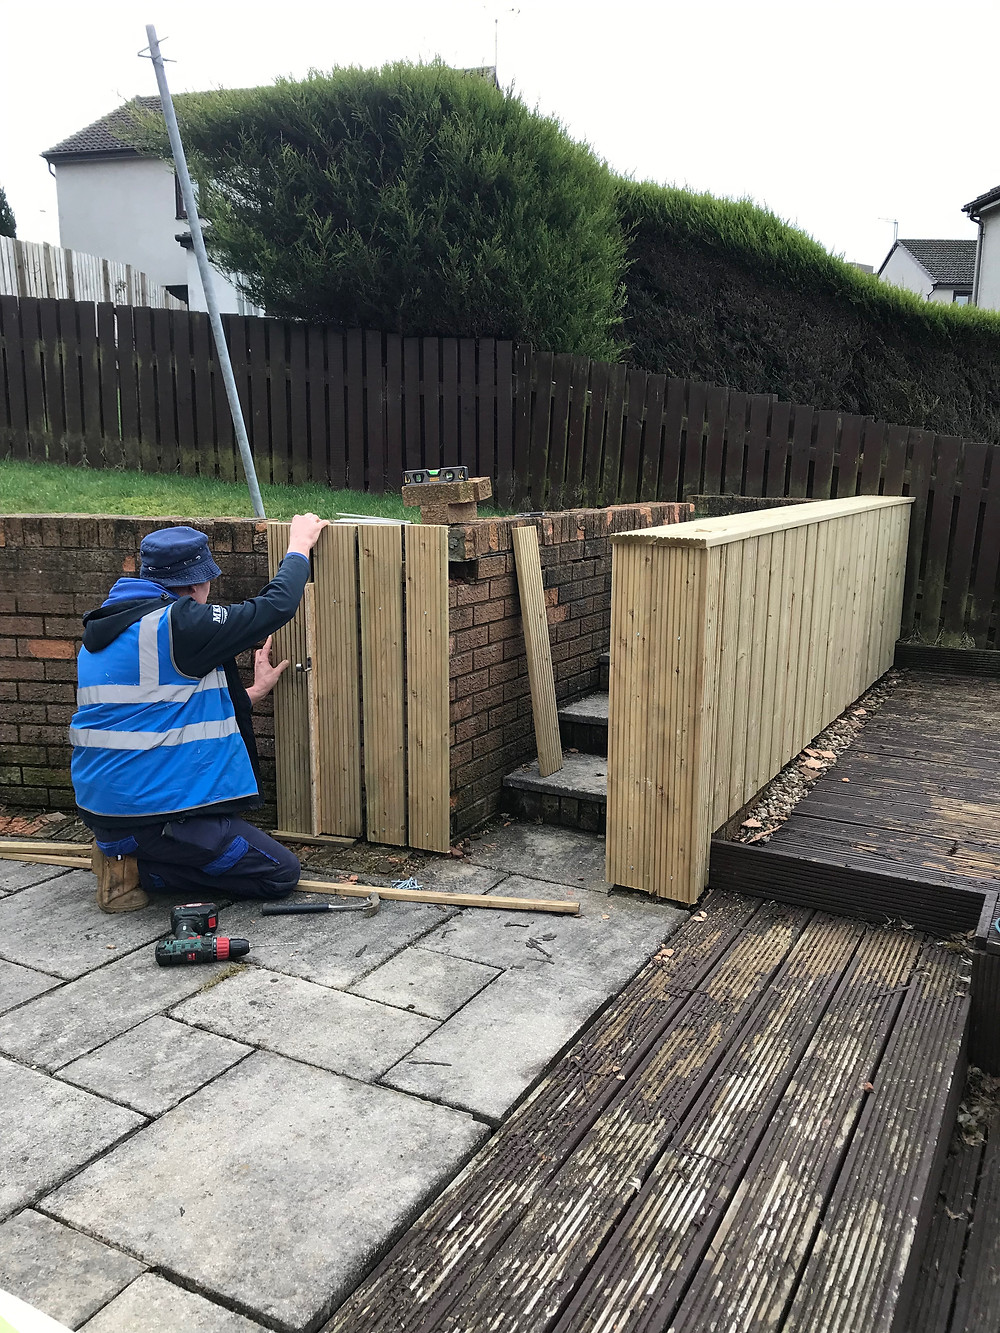 Decking wall cladding being fitted